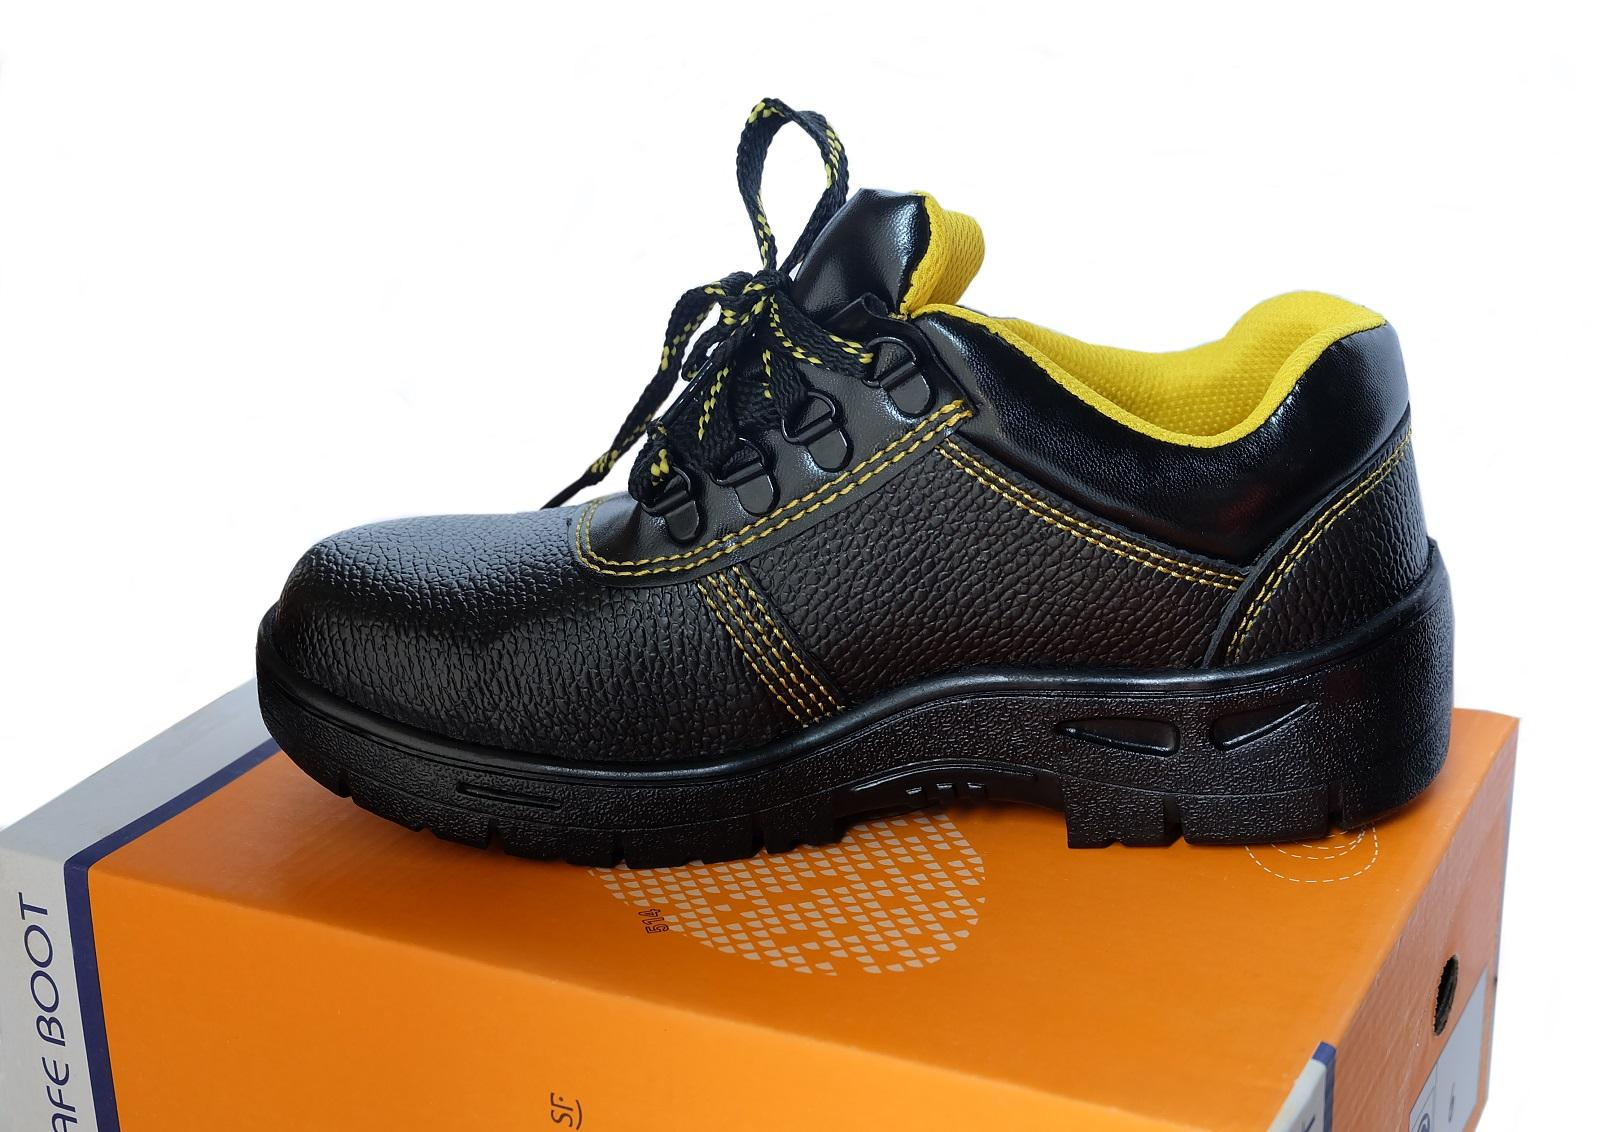 Welwolf Safety Shoes With Metal Cap And Metal Sole By Spiro Spot Global.